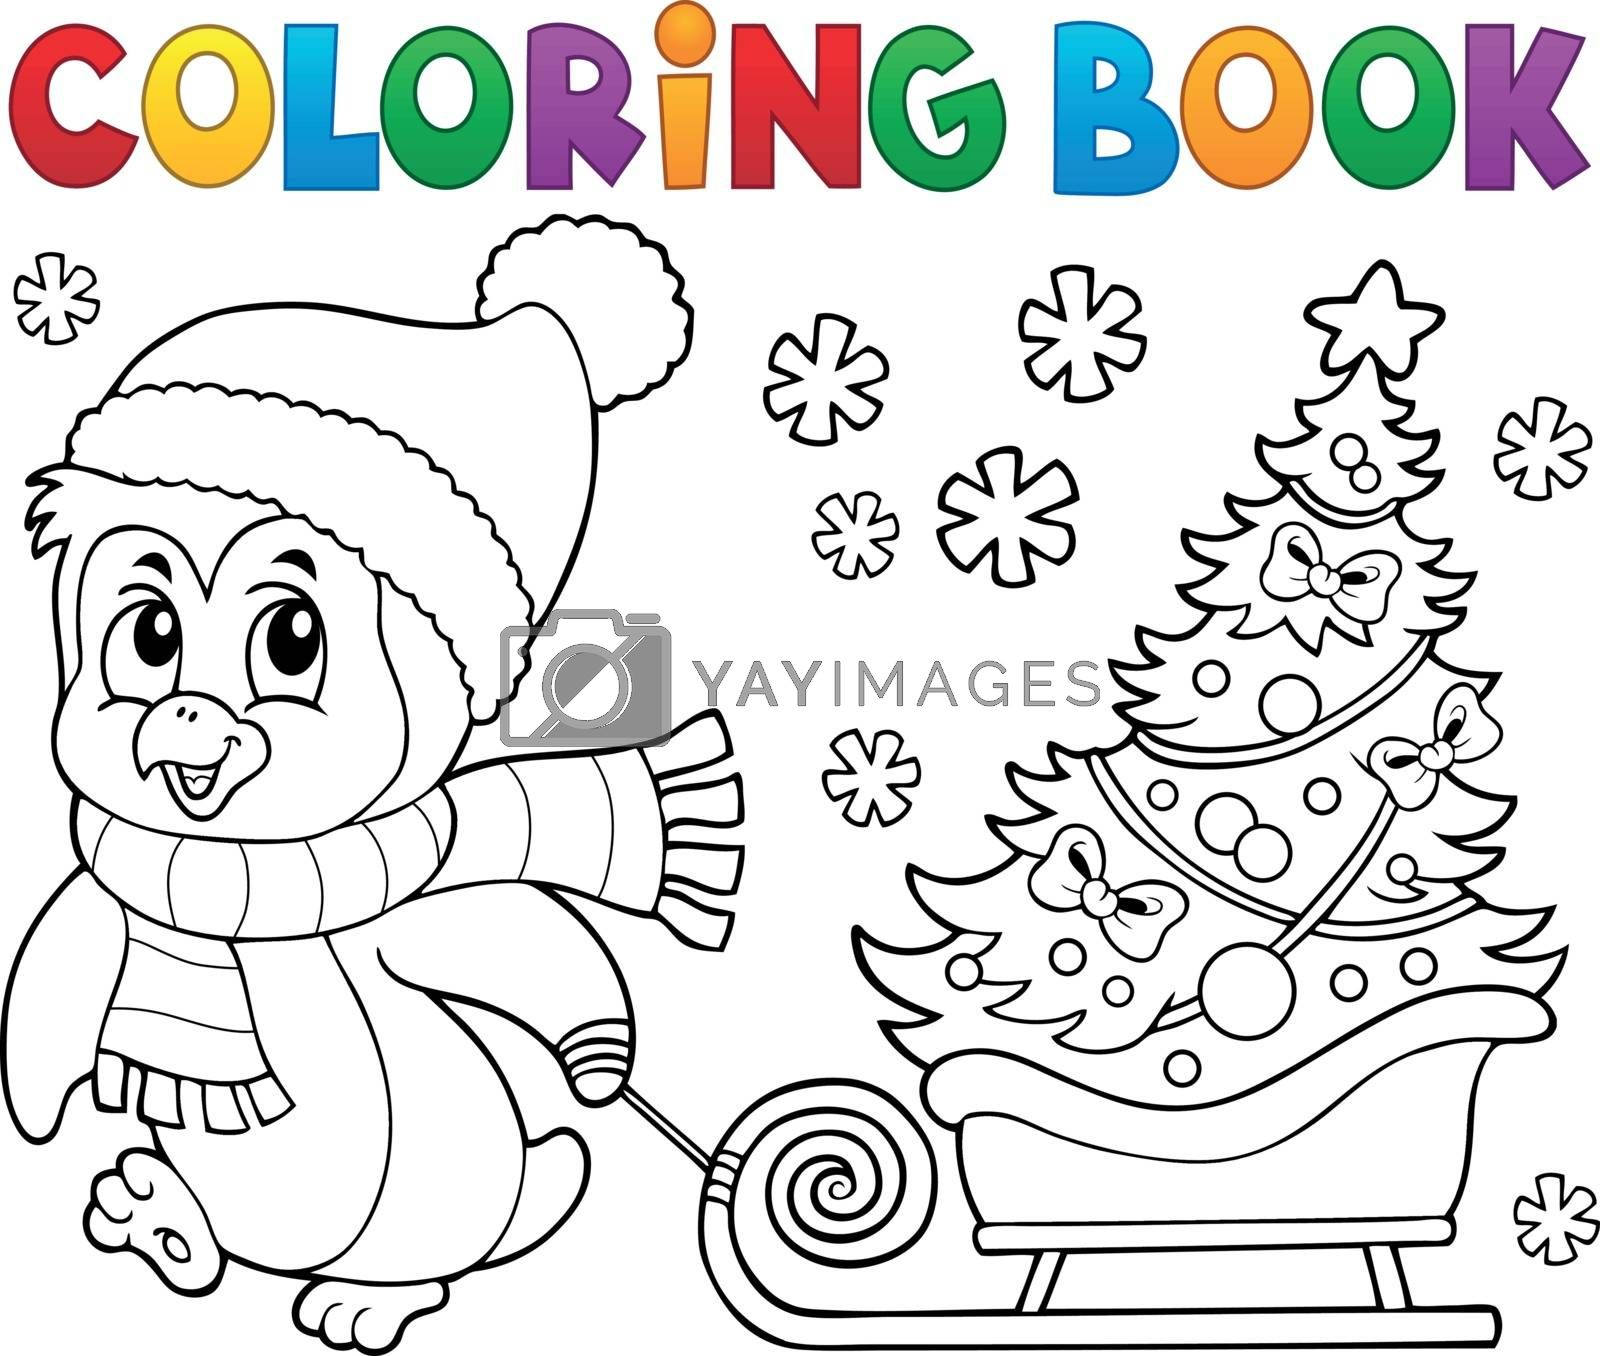 Coloring book Christmas penguin topic 7 - eps10 vector illustration.